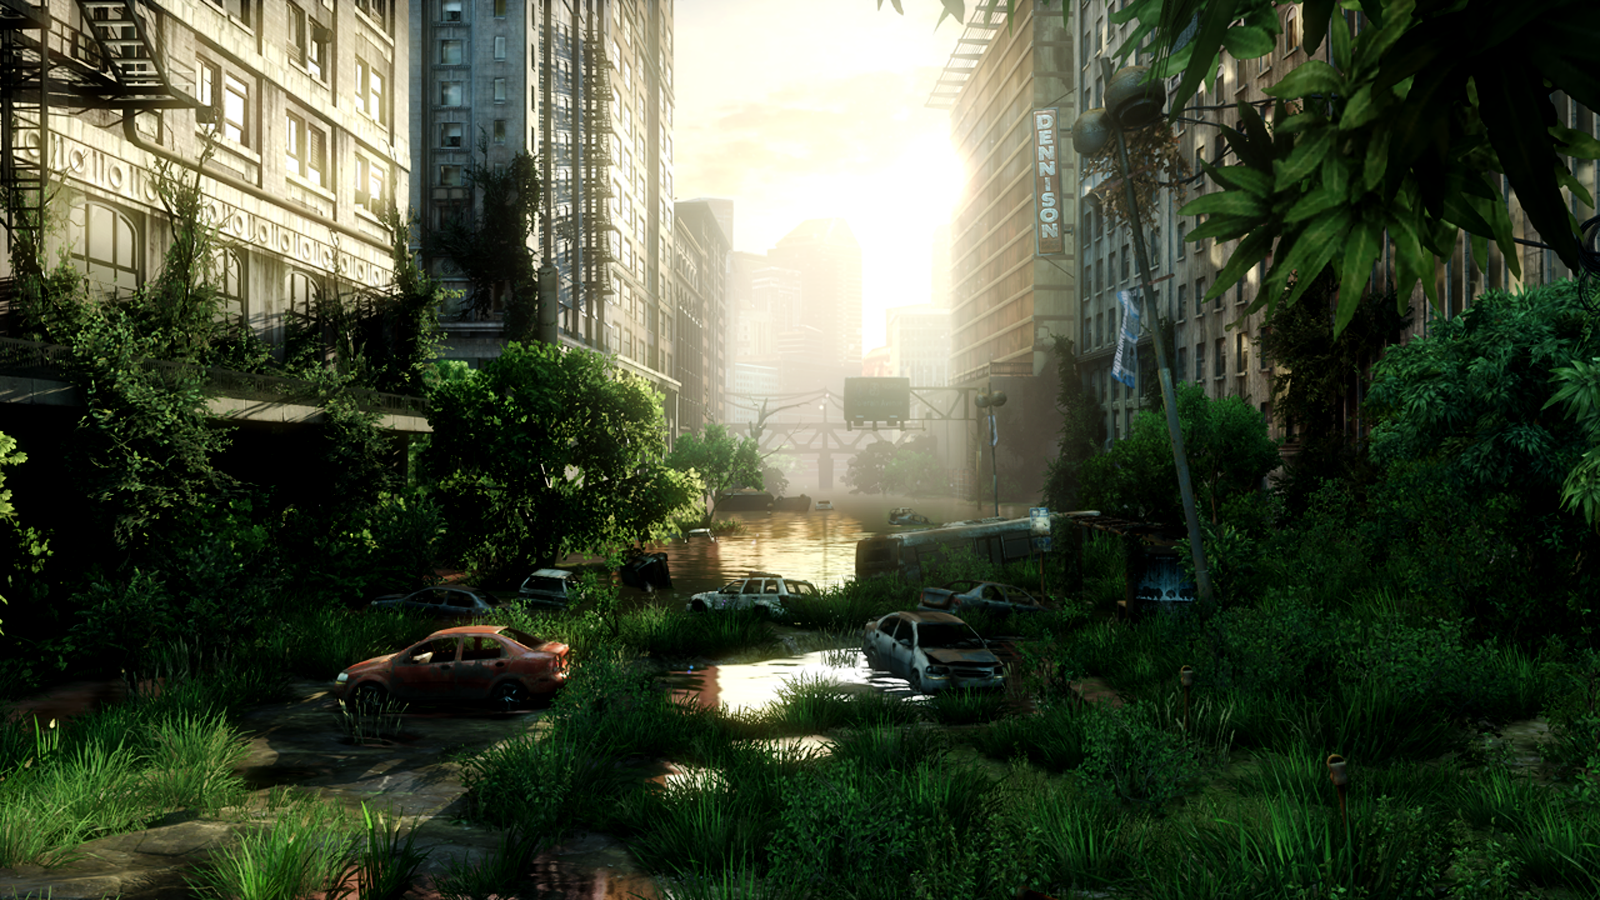 The Last Of Us Hd Wallpapers For Windows 7 Xp Vista Pictures